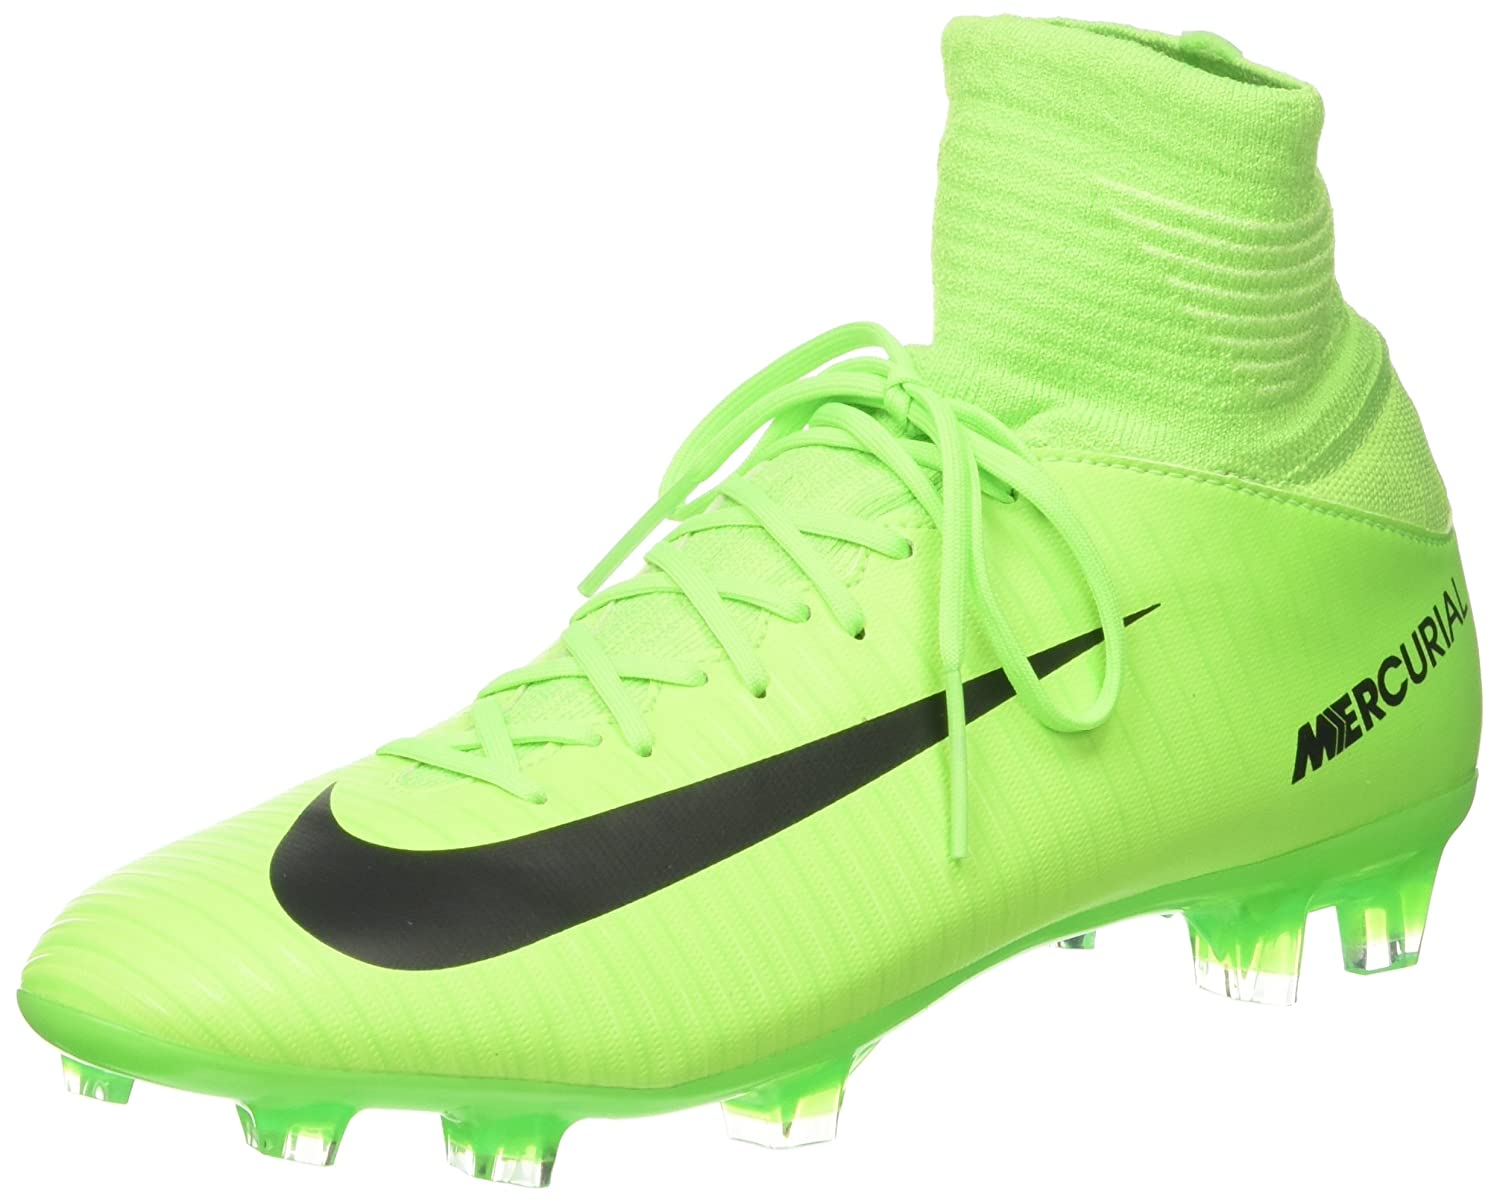 new product 439af 8b447 Amazon.com   Nike Kids Mercurial Superfly V FG Electric Green Black Flash  Lime Soccer Shoes - 4Y   Soccer